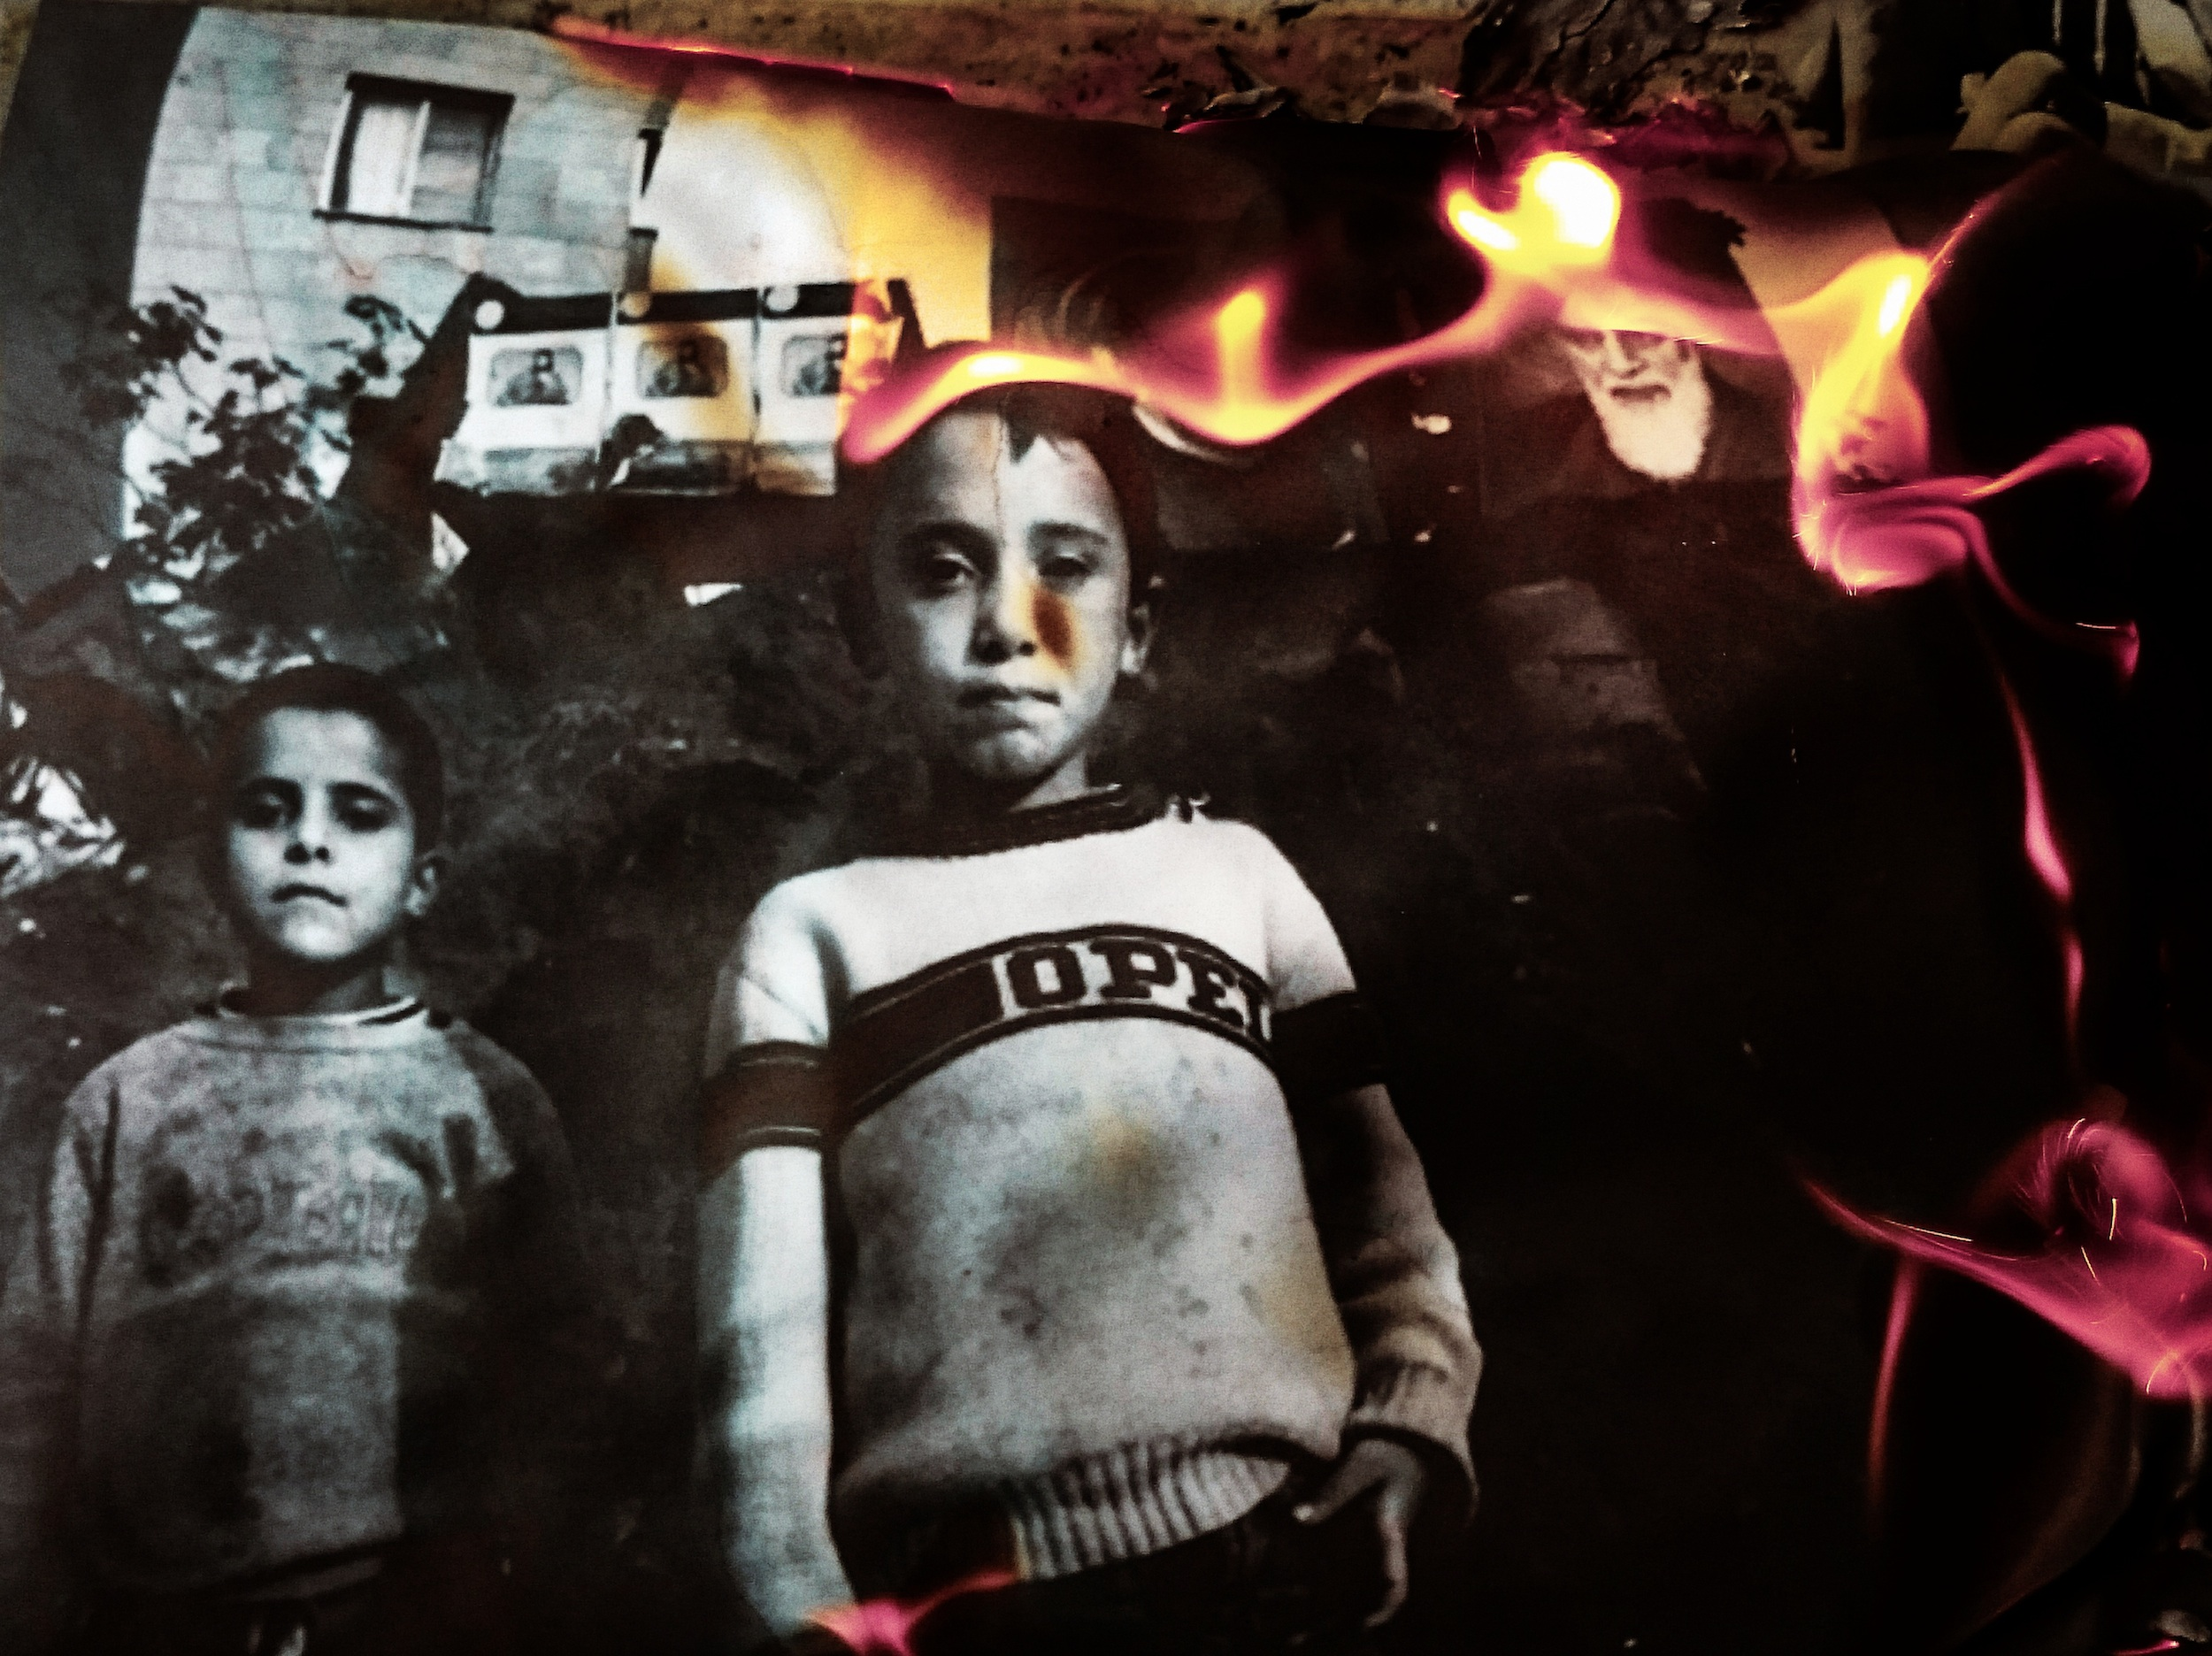 Beirut image on fire IV. The original burning image was published in the book War Children, Lebanon 1985-1992, page 57. Living on the demarcation line in downtown Beirut, Lebanon, 1988.